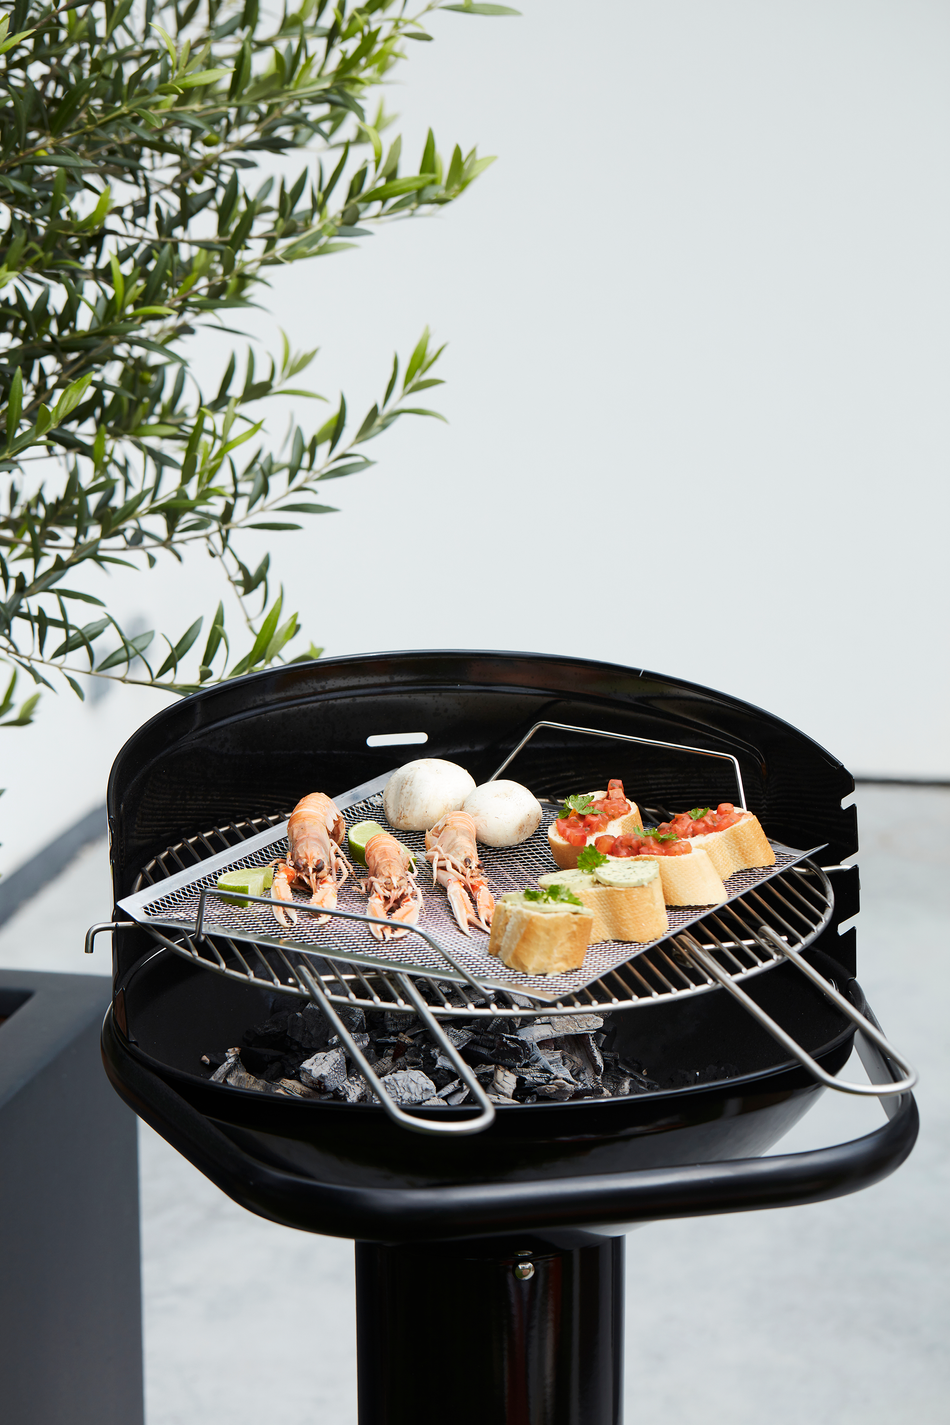 What are the advantages of a Loewy 50 charcoal BBQ?